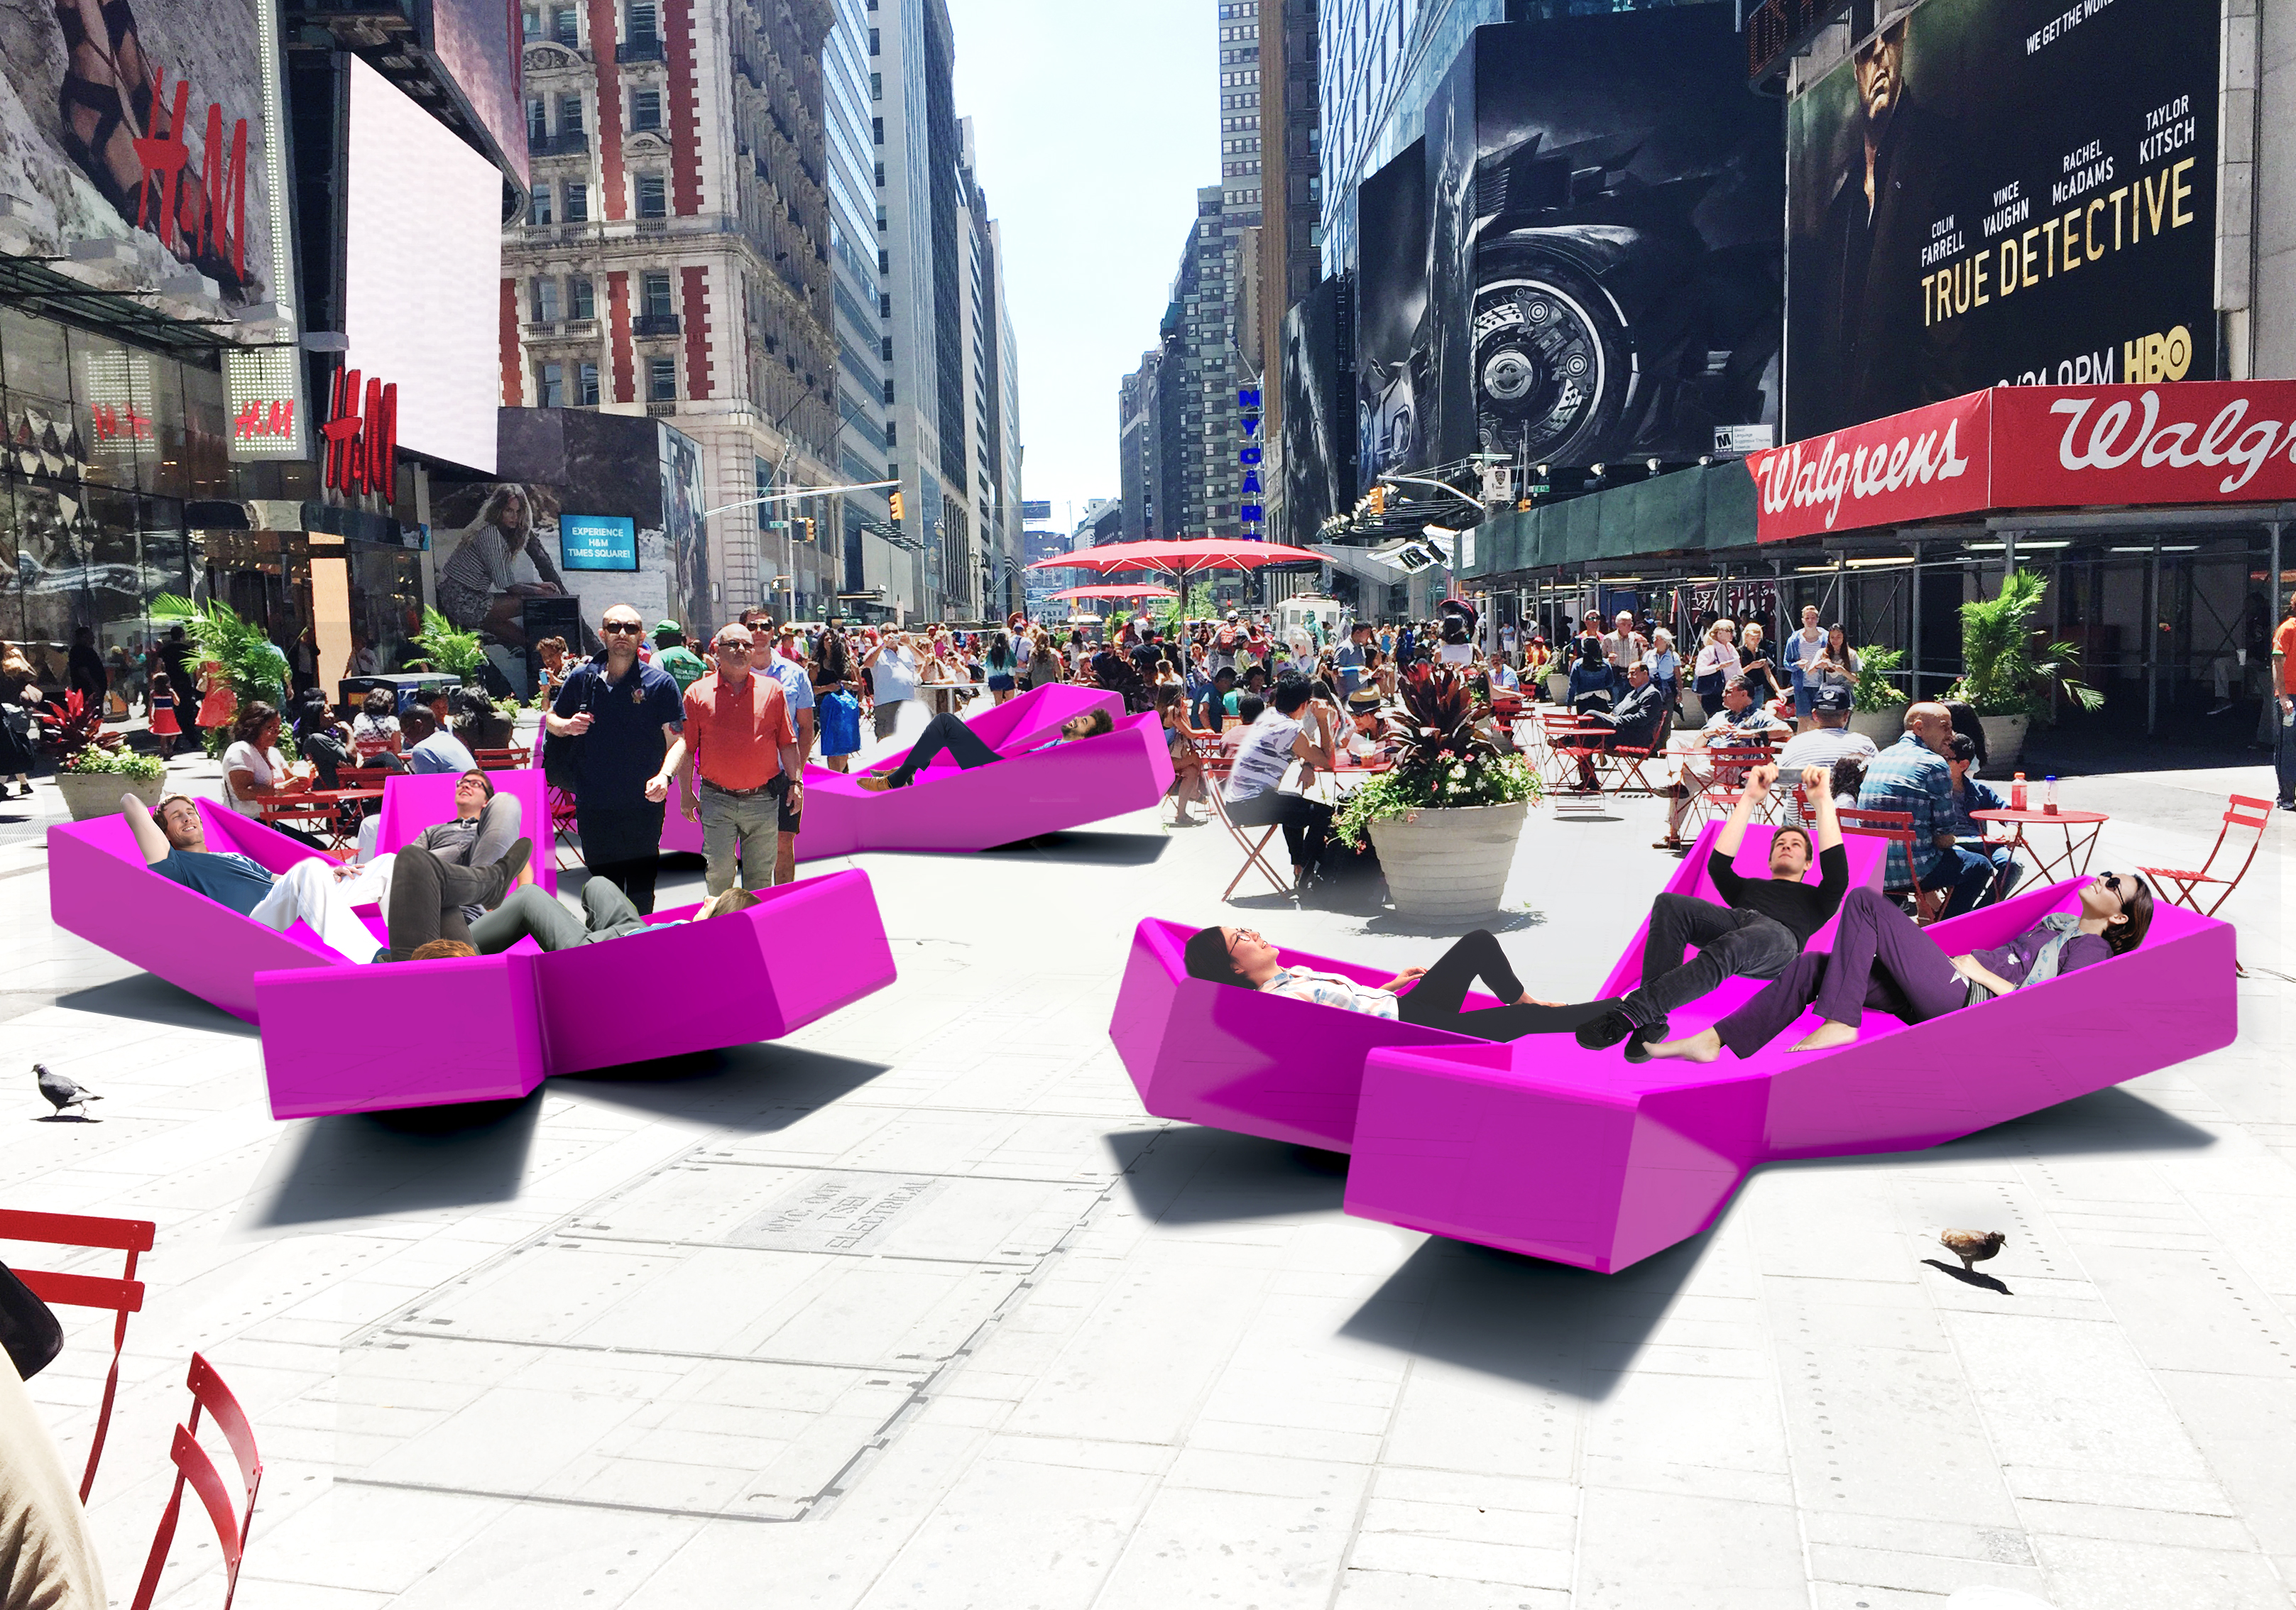 Xxx times square with love comes to times square for Architecture jobs nyc